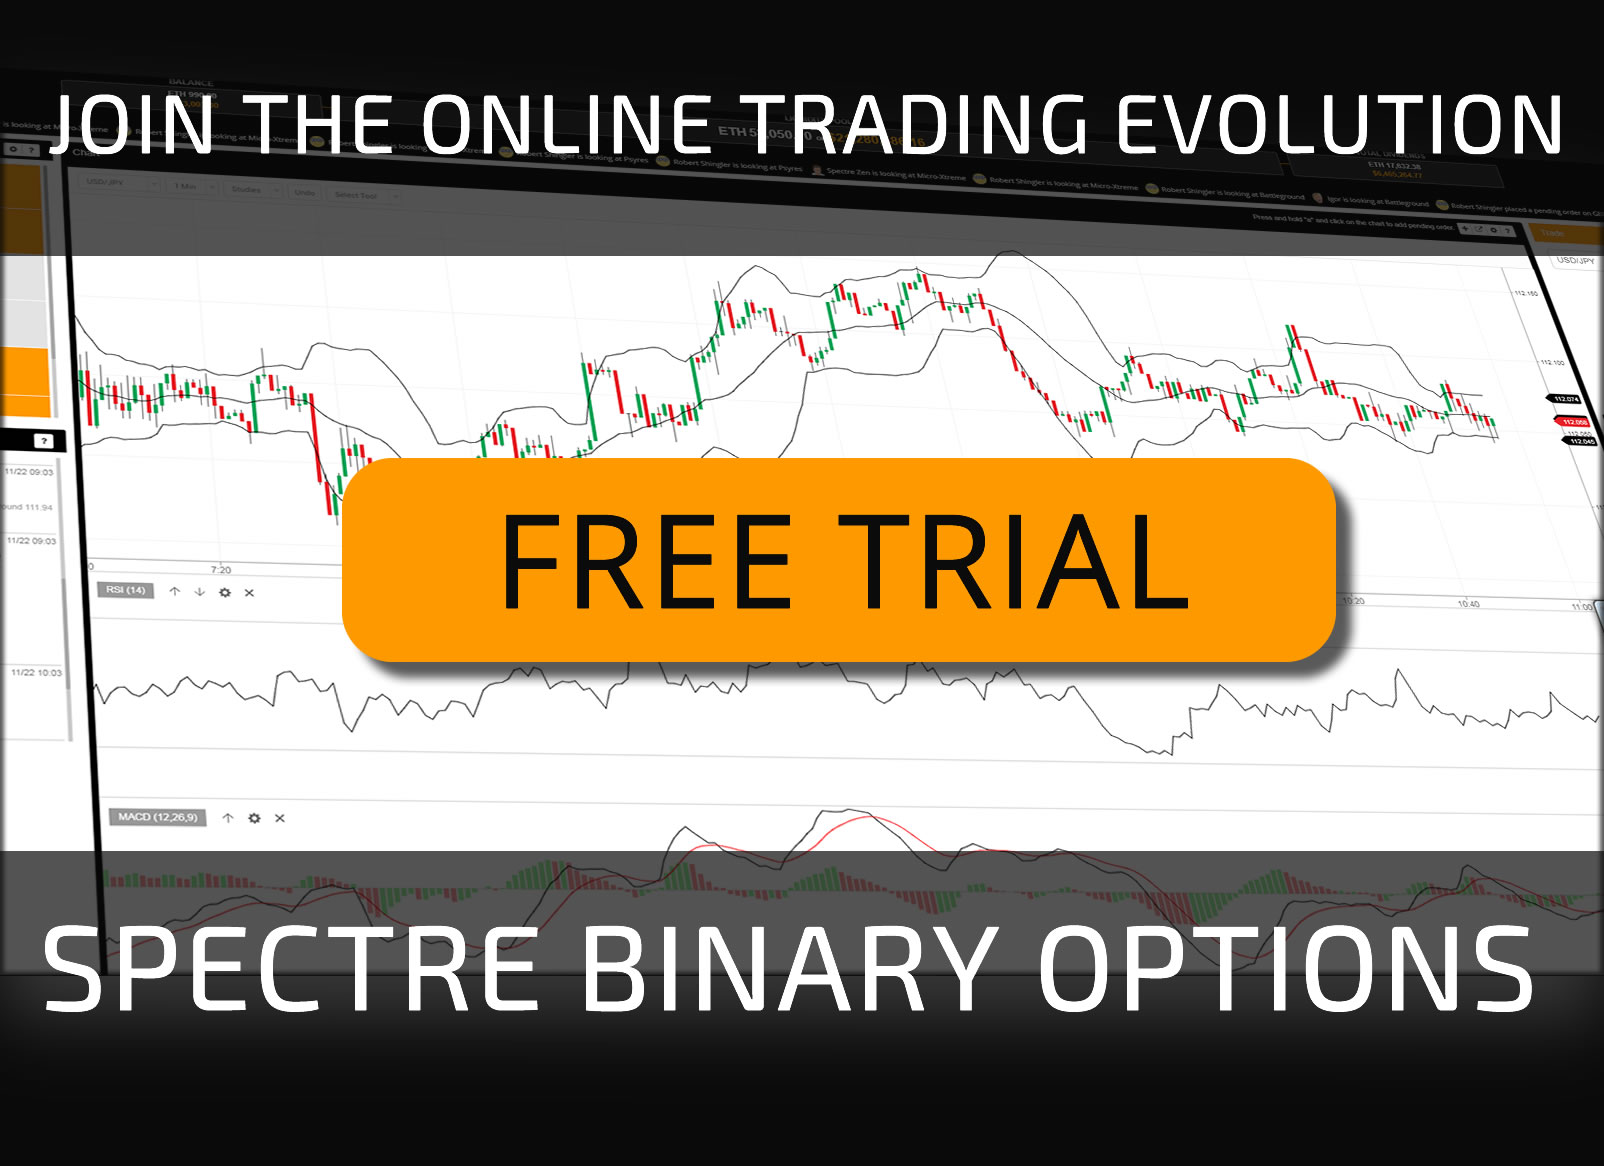 Binary options system trial csgo poor betting skins site